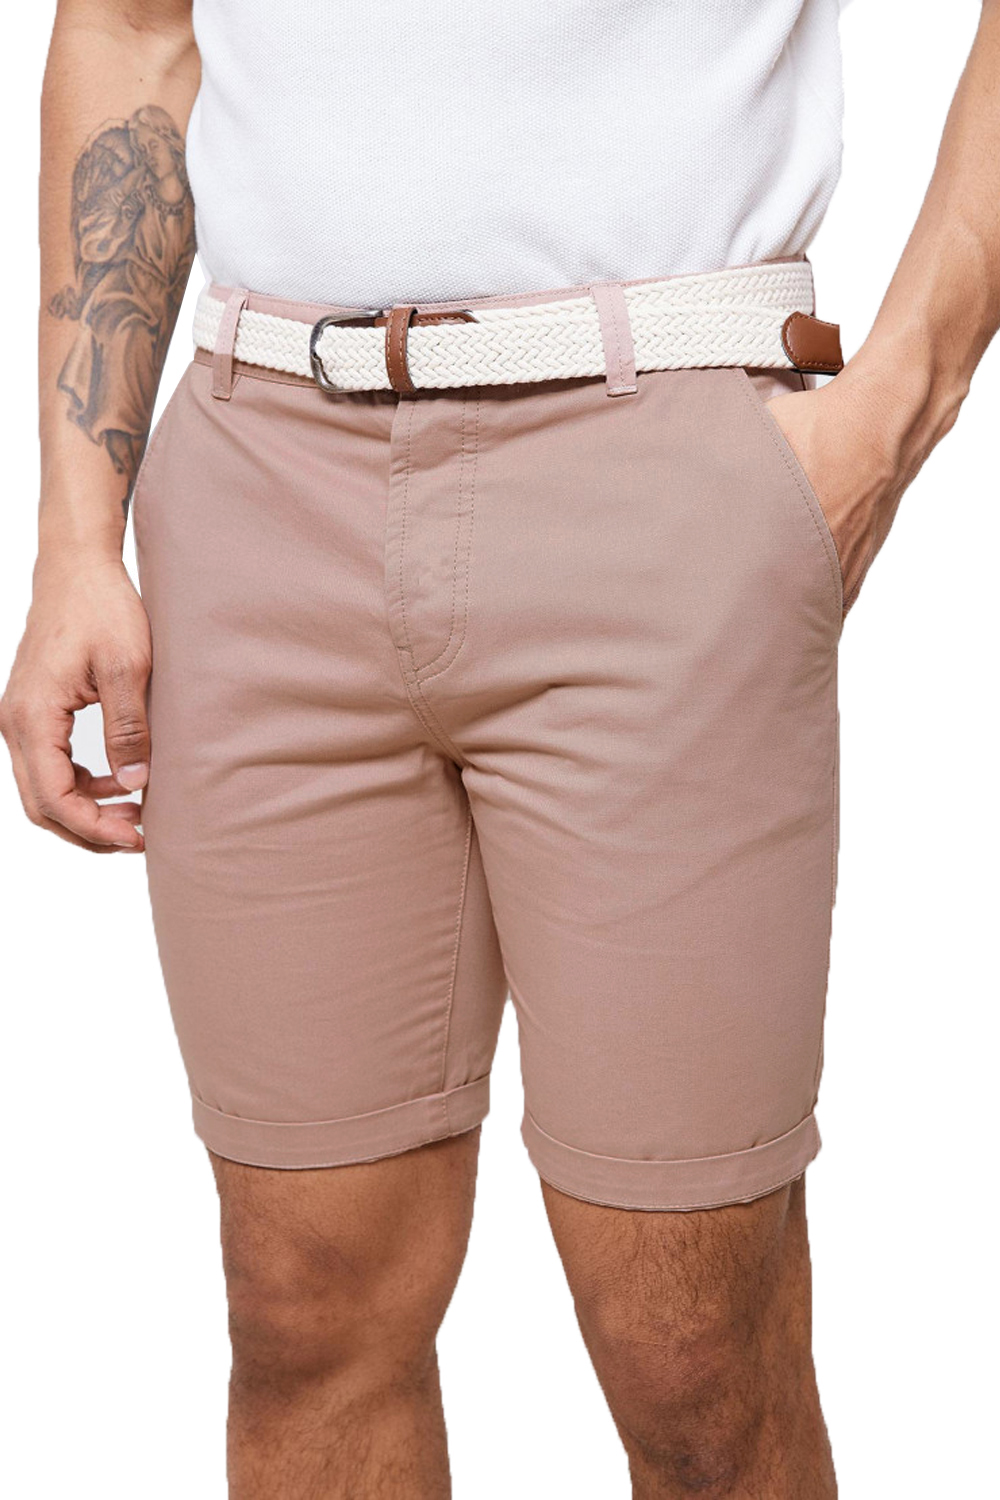 Threadbare-Mens-Slim-Fit-Belted-Chino-Shorts-Summer-Casual-Cotton-Smart-Bottoms thumbnail 16